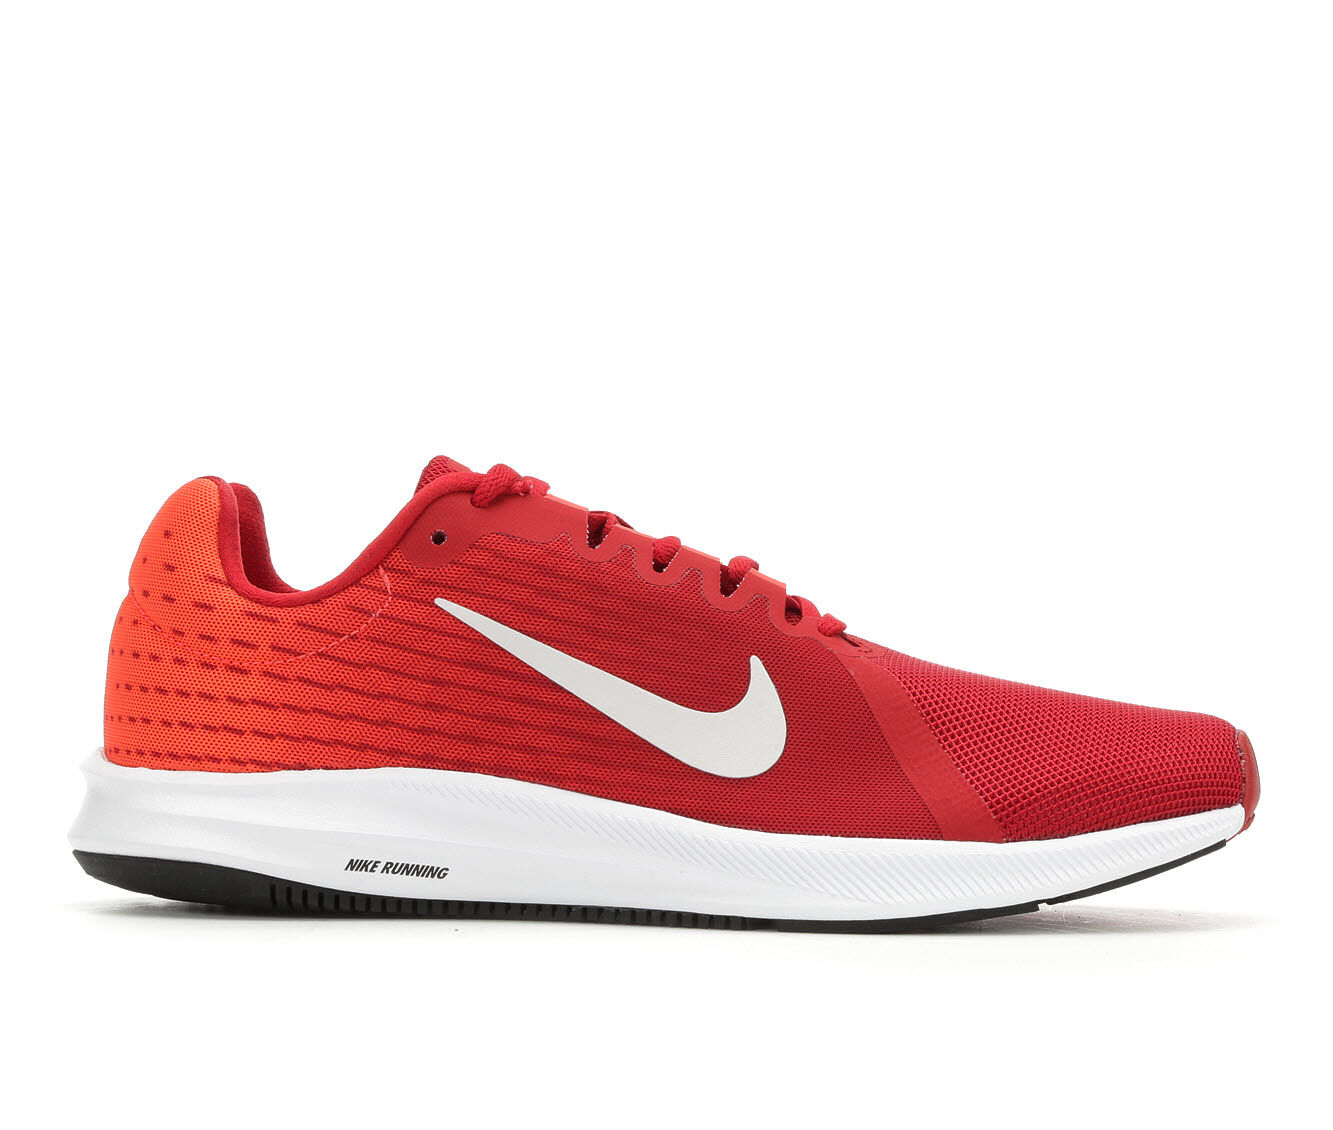 Men's Nike Downshifter 8 Running Shoes Red/Gry/Blk